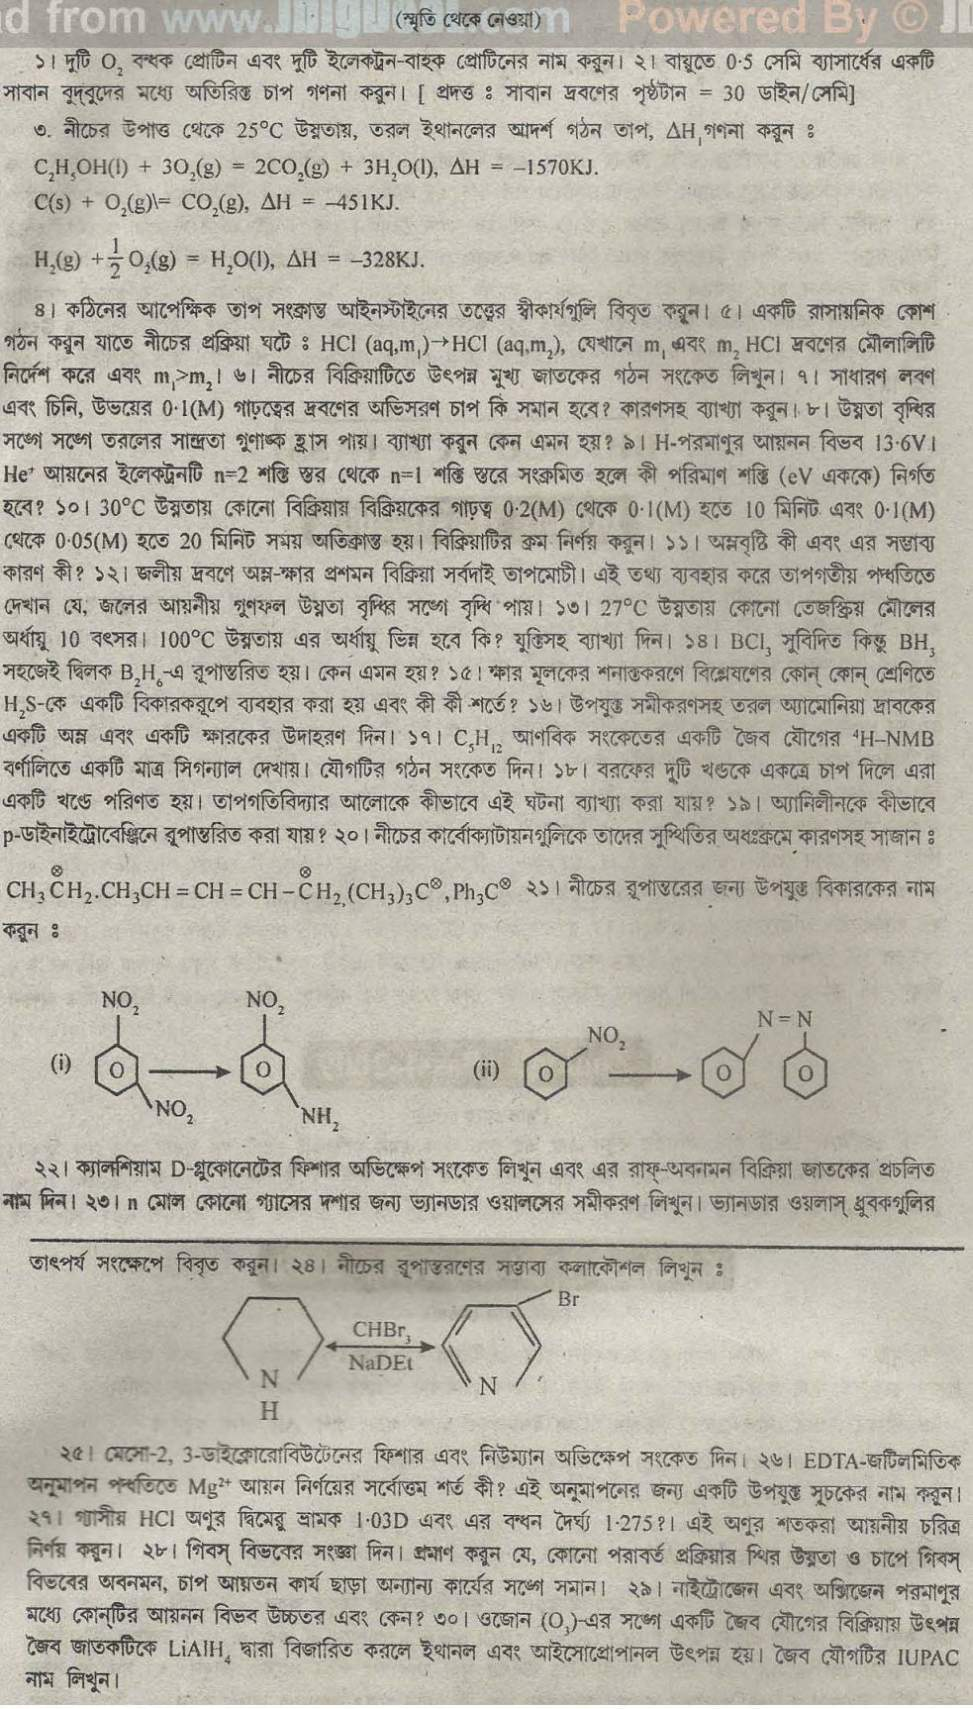 018 Essay Example West Bengal School Service Commission Last Year Question Papers Of Chemistry Pope On Unique Criticism Part 2 Pope's Was Written In Full